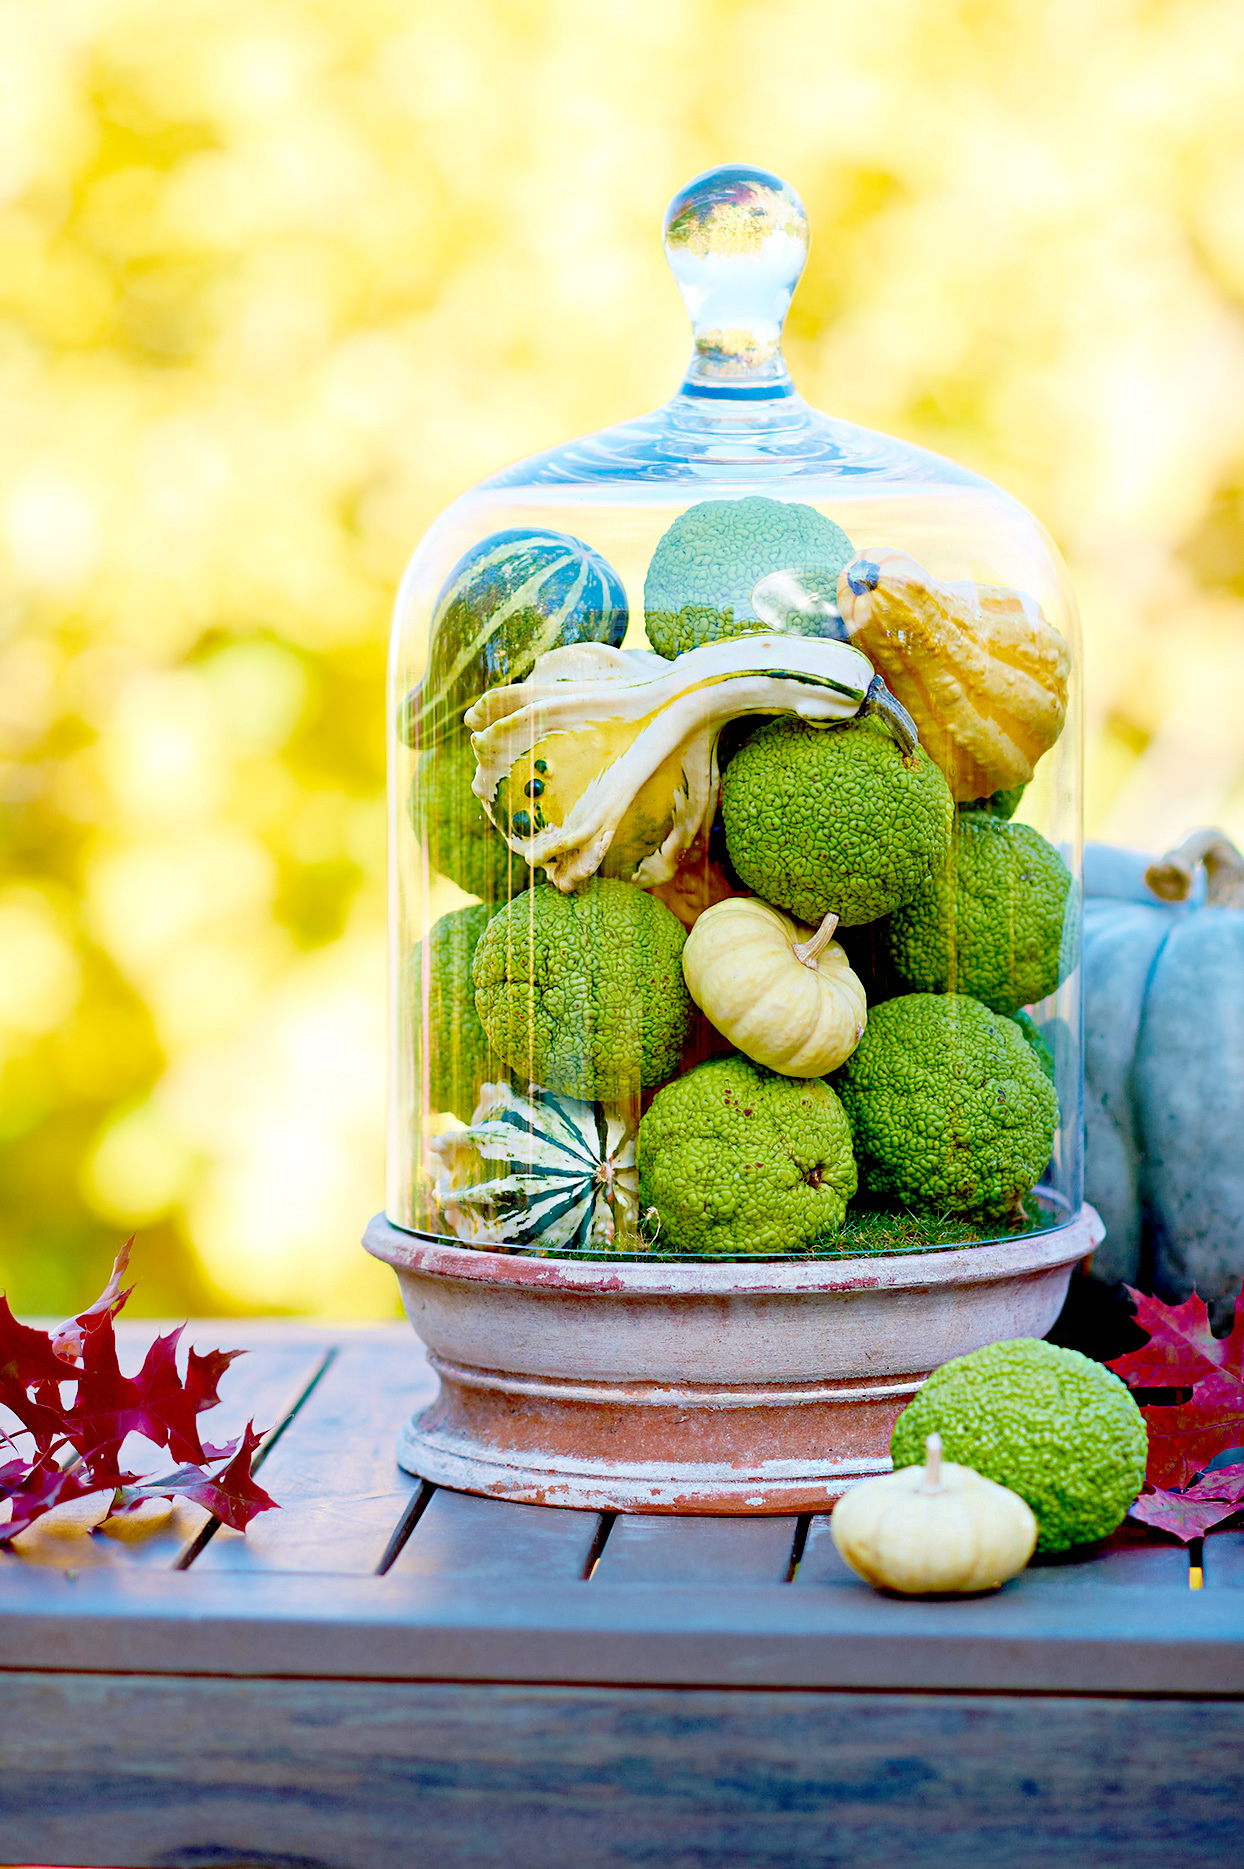 Hedge apples, pumpkins, and gourds in glass container